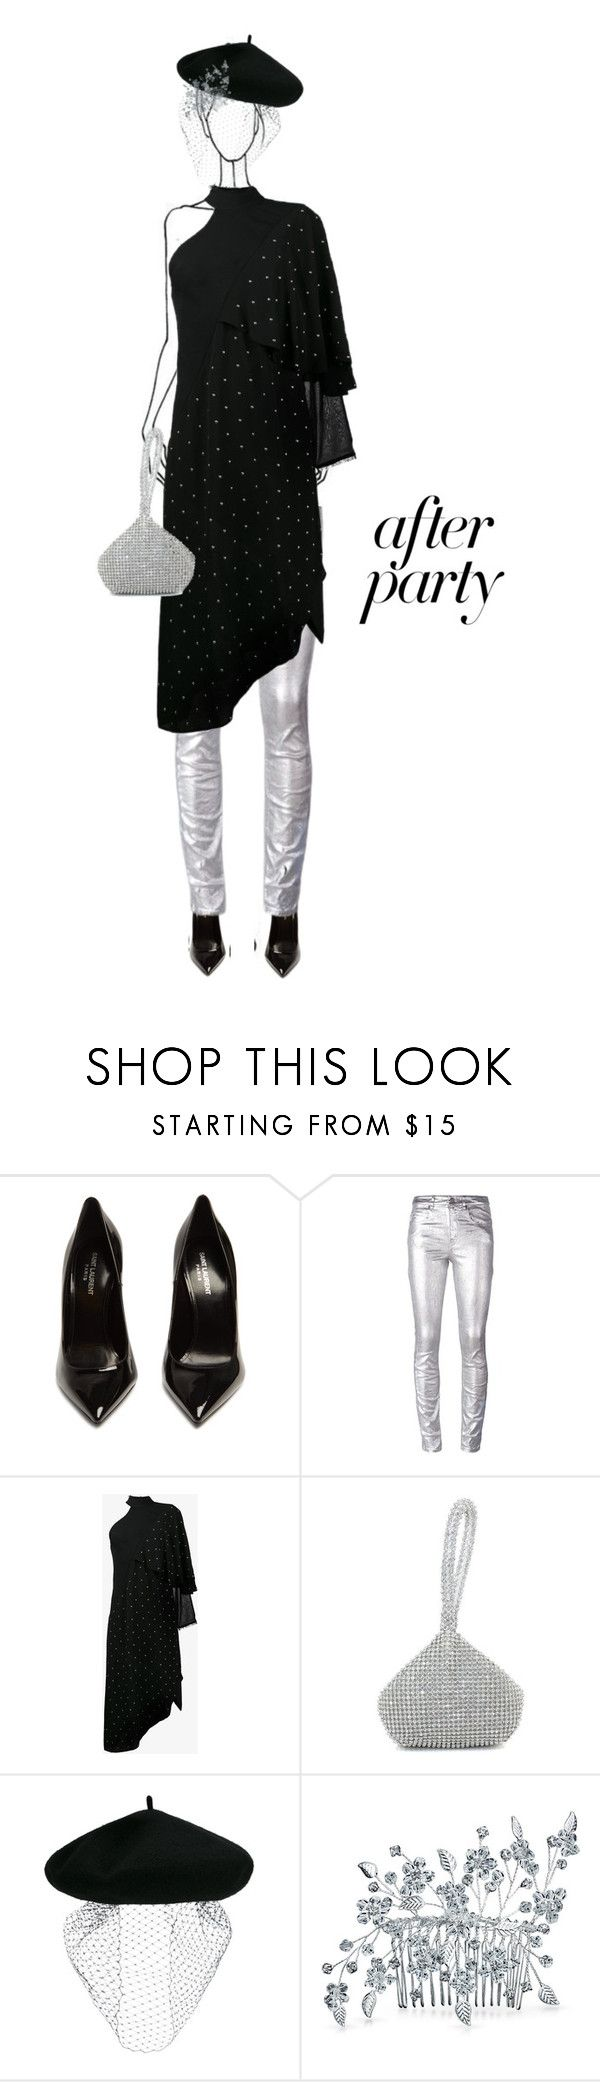 """""""Untitled #1369"""" by letiperez-reall ❤ liked on Polyvore featuring Yves Saint Laurent, Étoile Isabel Marant, Kitx, Silver Spoon Attire, Bling Jewelry, polyvoreeditorial, polyvorecontest and afterpary"""